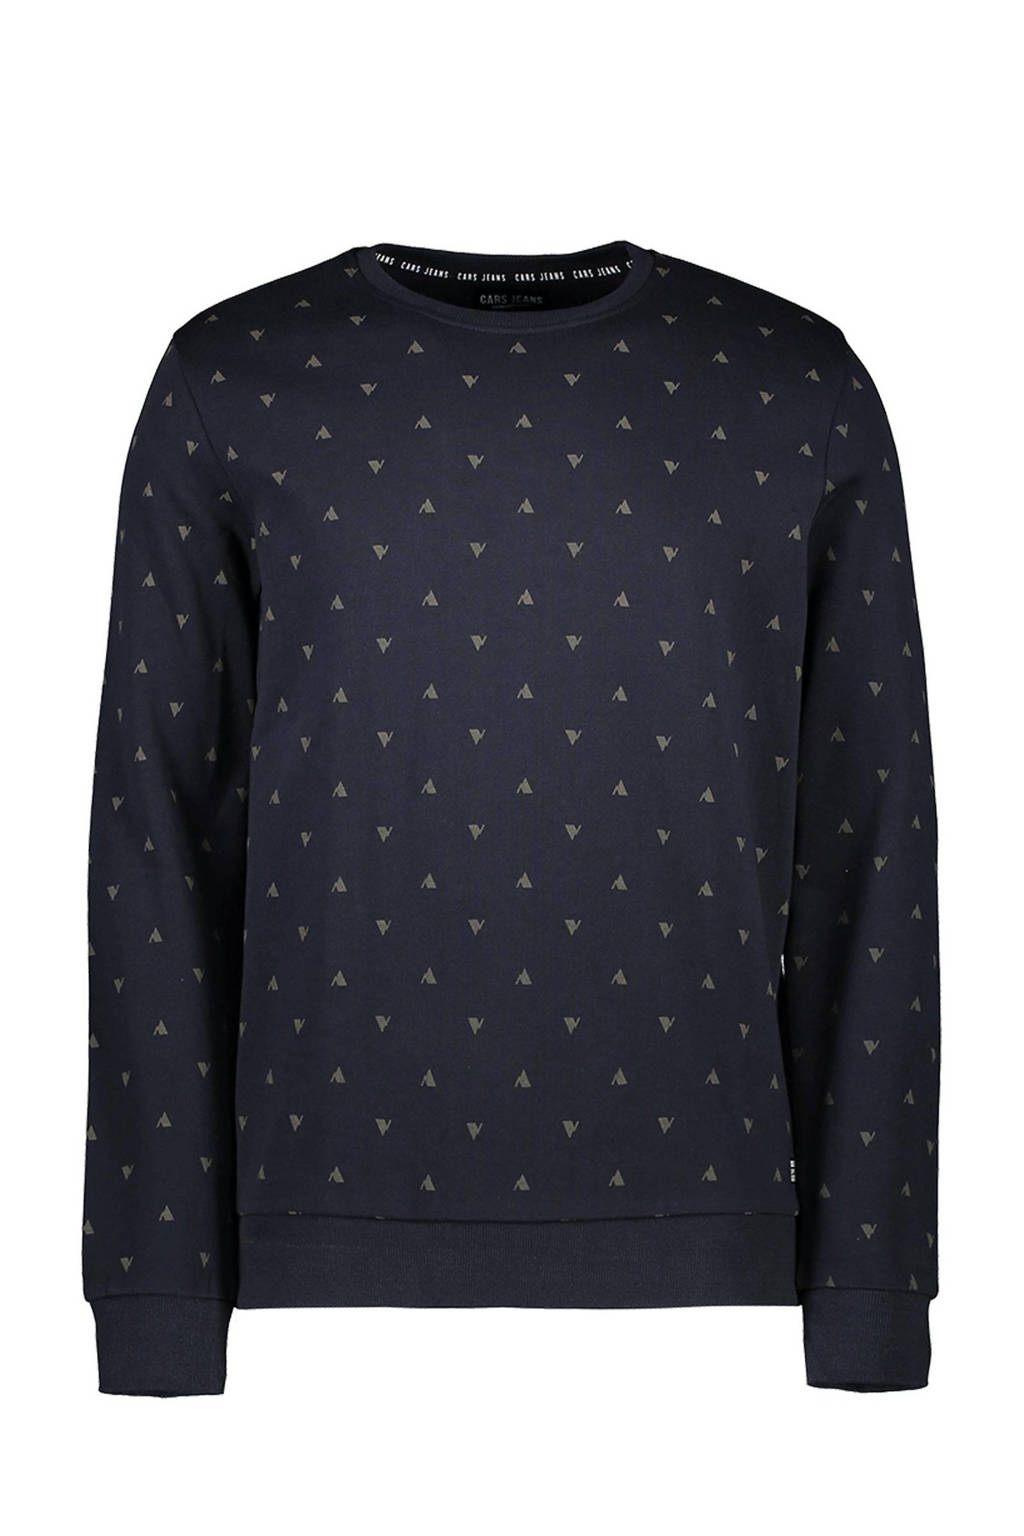 Cars sweater Gryss met all over print antraciet, Antraciet